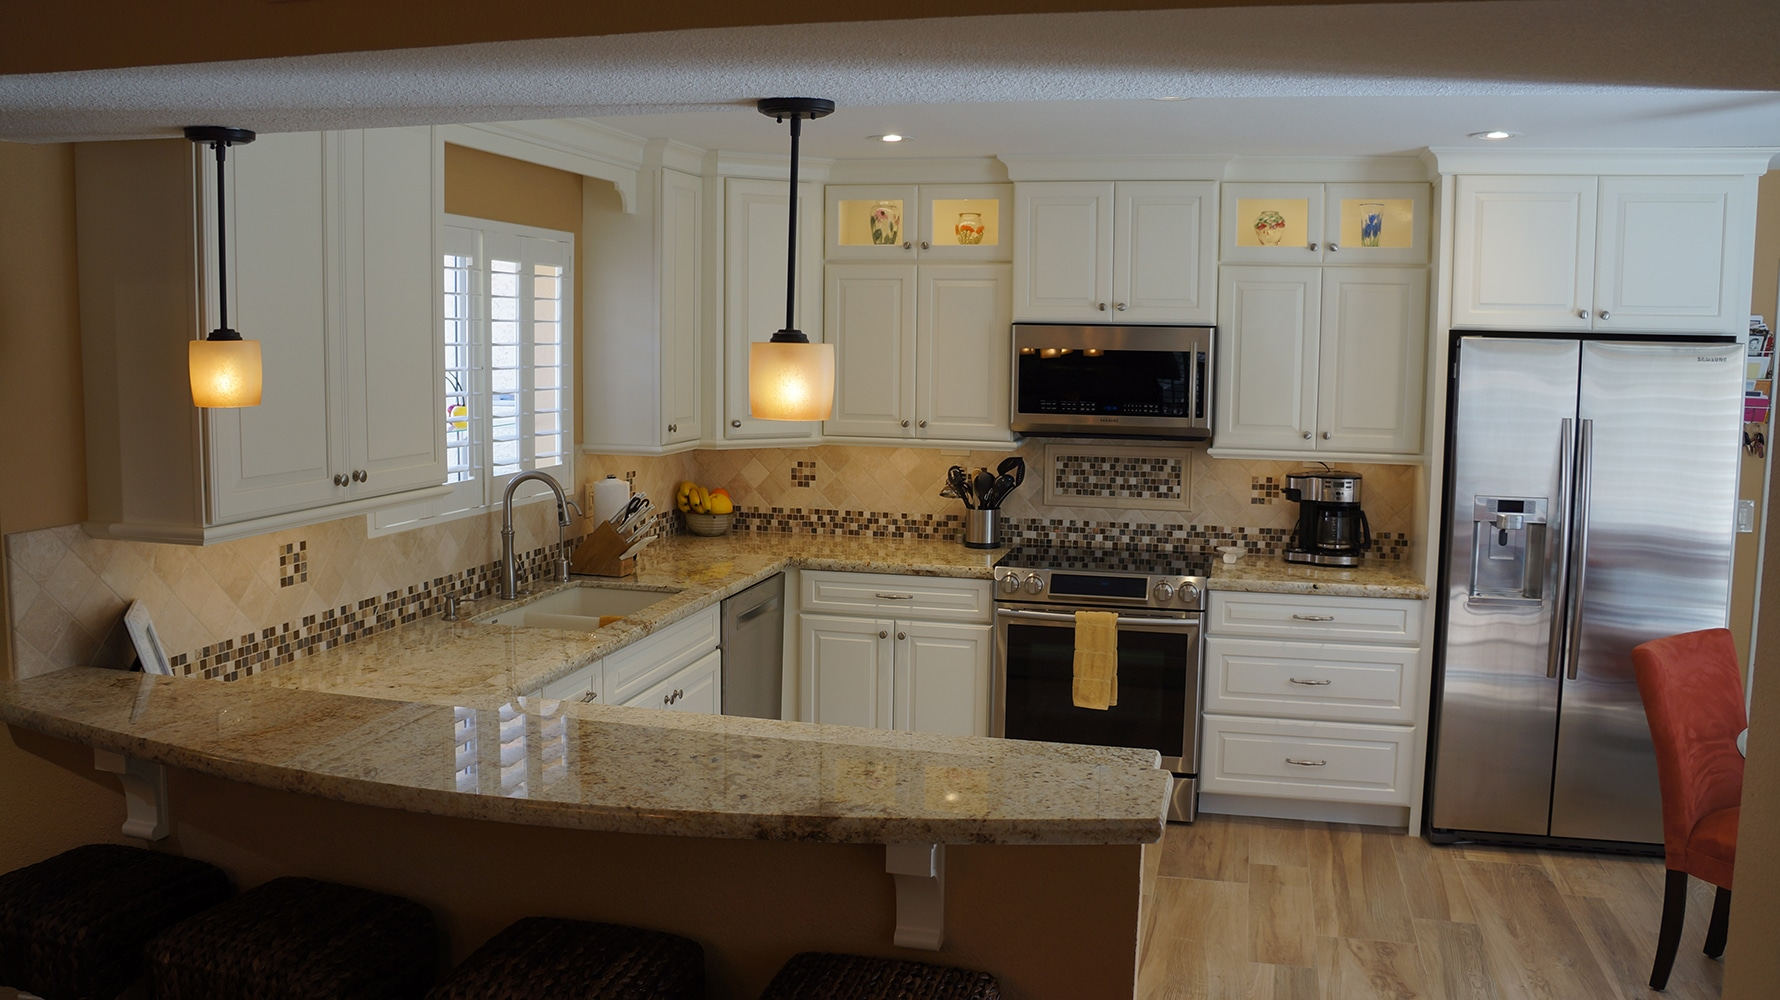 Kitchen and Bath Remodeling Companies Scottsdale AZ